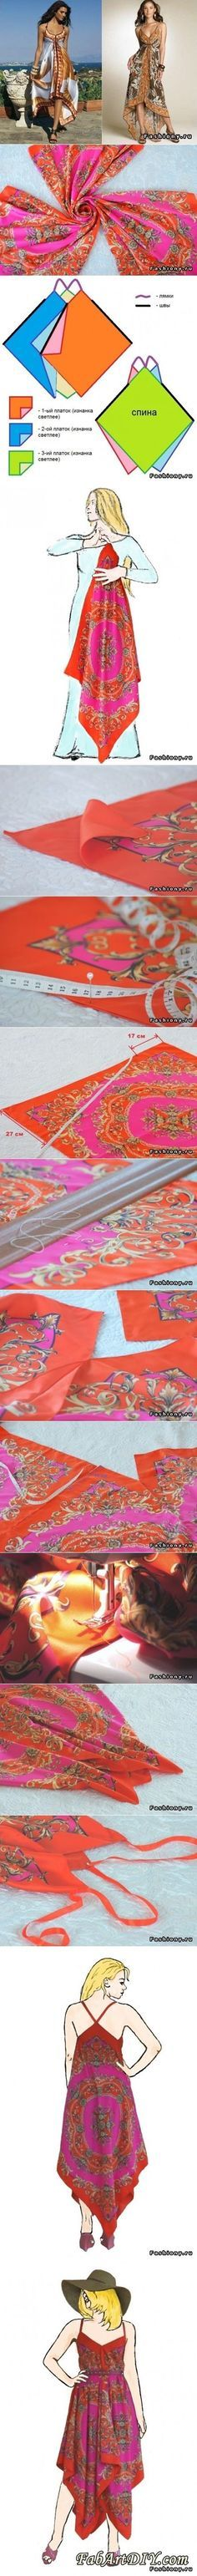 Scarf dress tutorials- Christina this is for you Dress Tutorials, Sewing Tutorials, Sewing Hacks, Sewing Crafts, Sewing Projects, Diy Clothing, Sewing Clothes, Clothing Patterns, Sewing Patterns